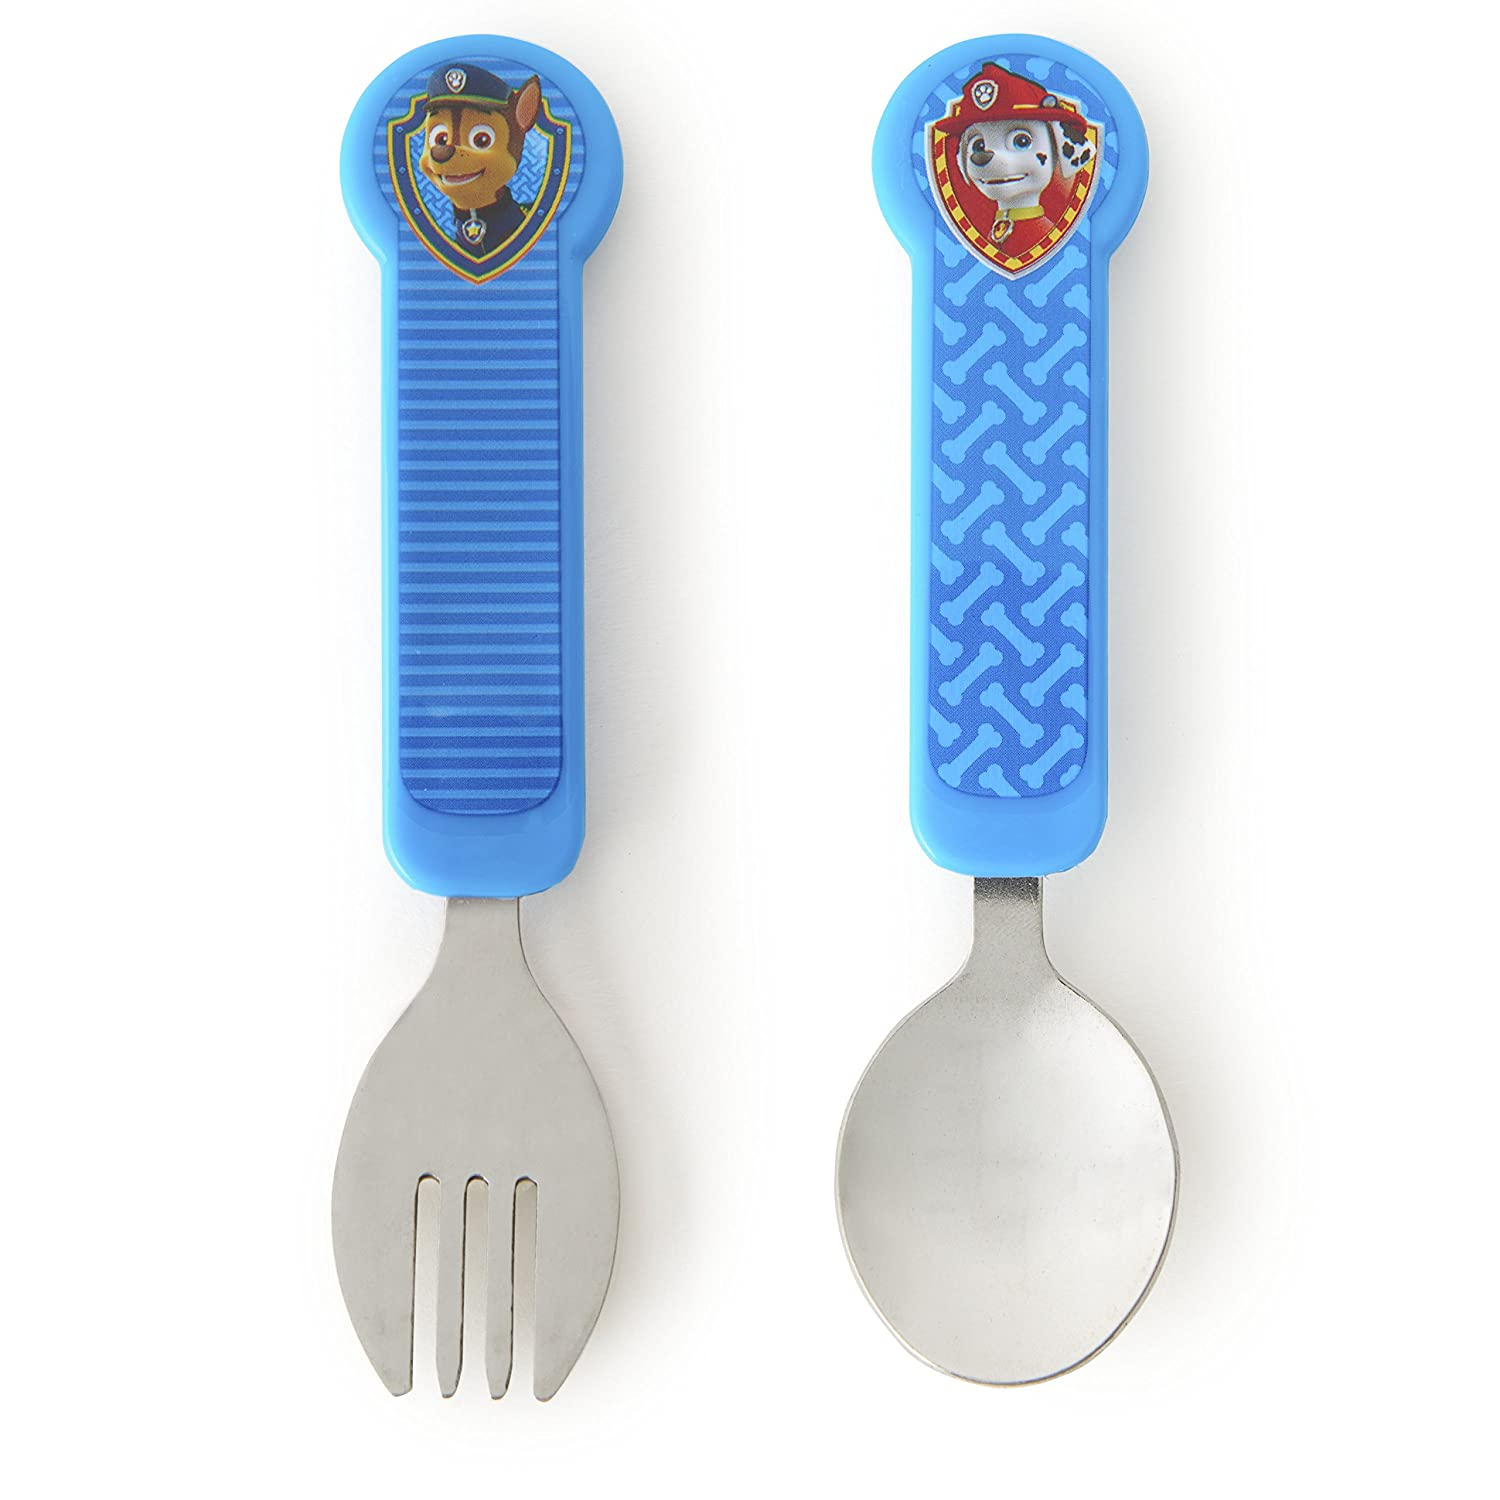 Munchkin Paw Patrol Toddler Fork and Spoon, Blue 10884